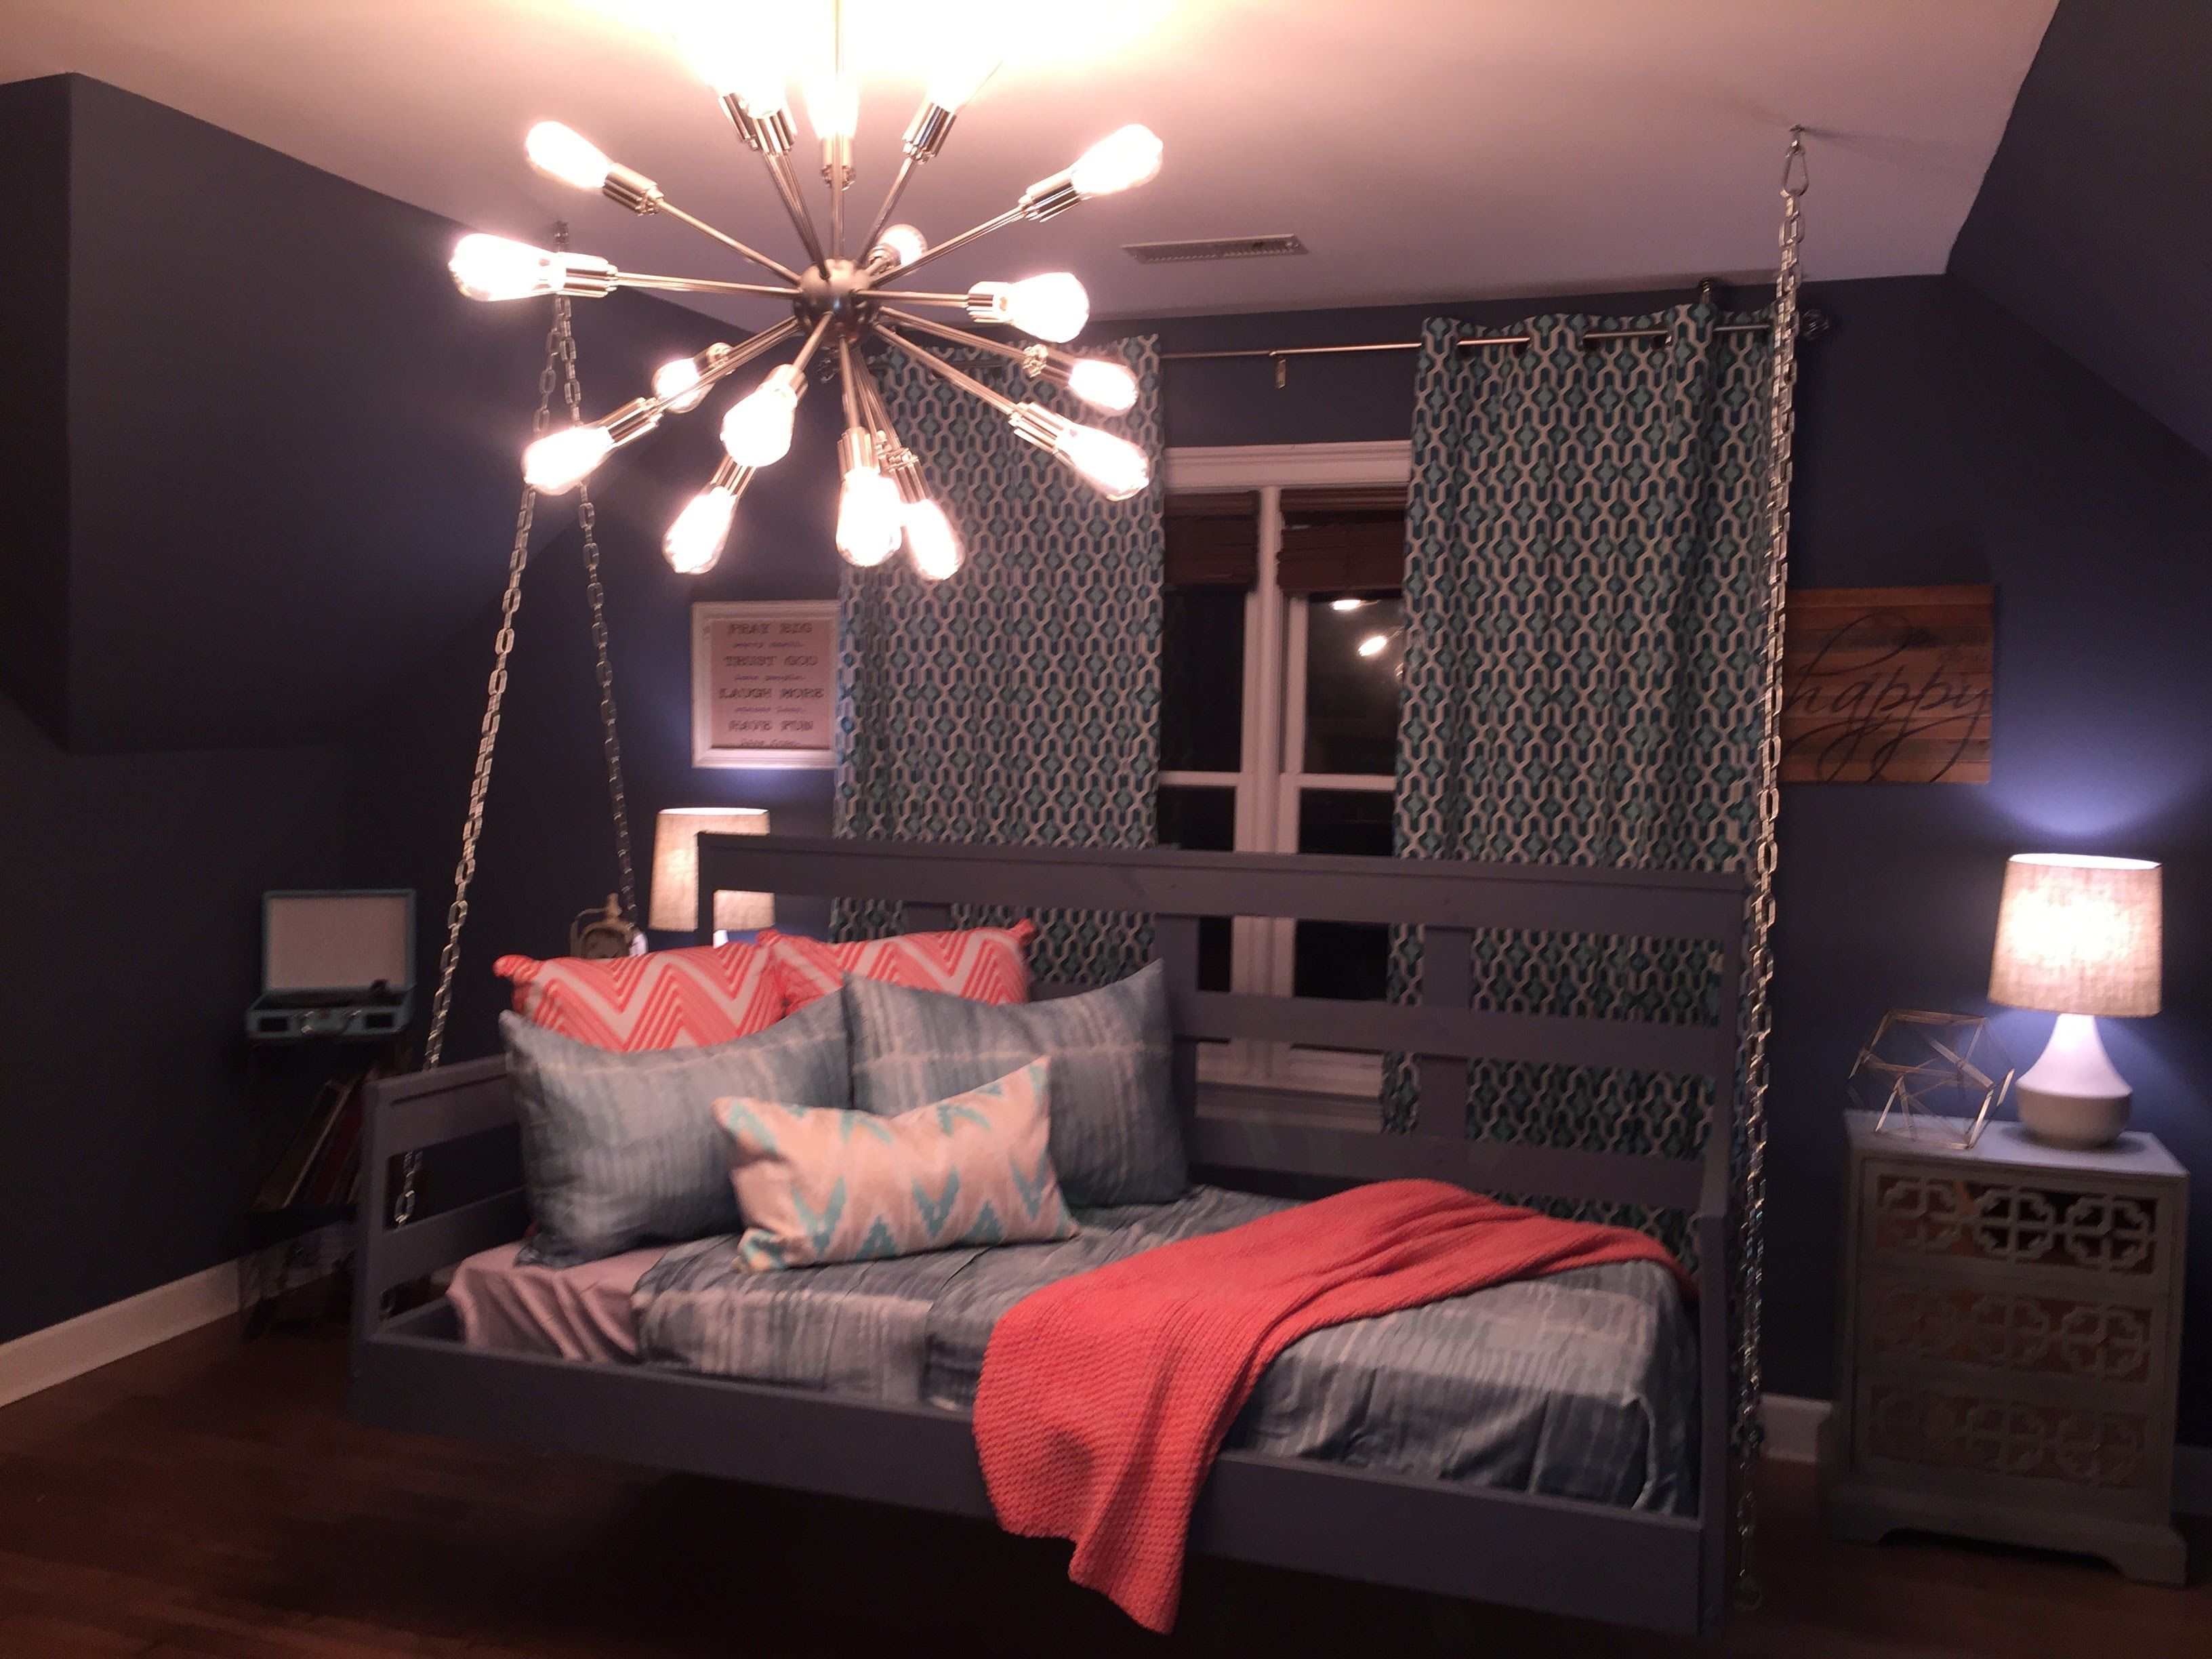 Kids Room Design With Hanging Bed And Sputnik Chandelier